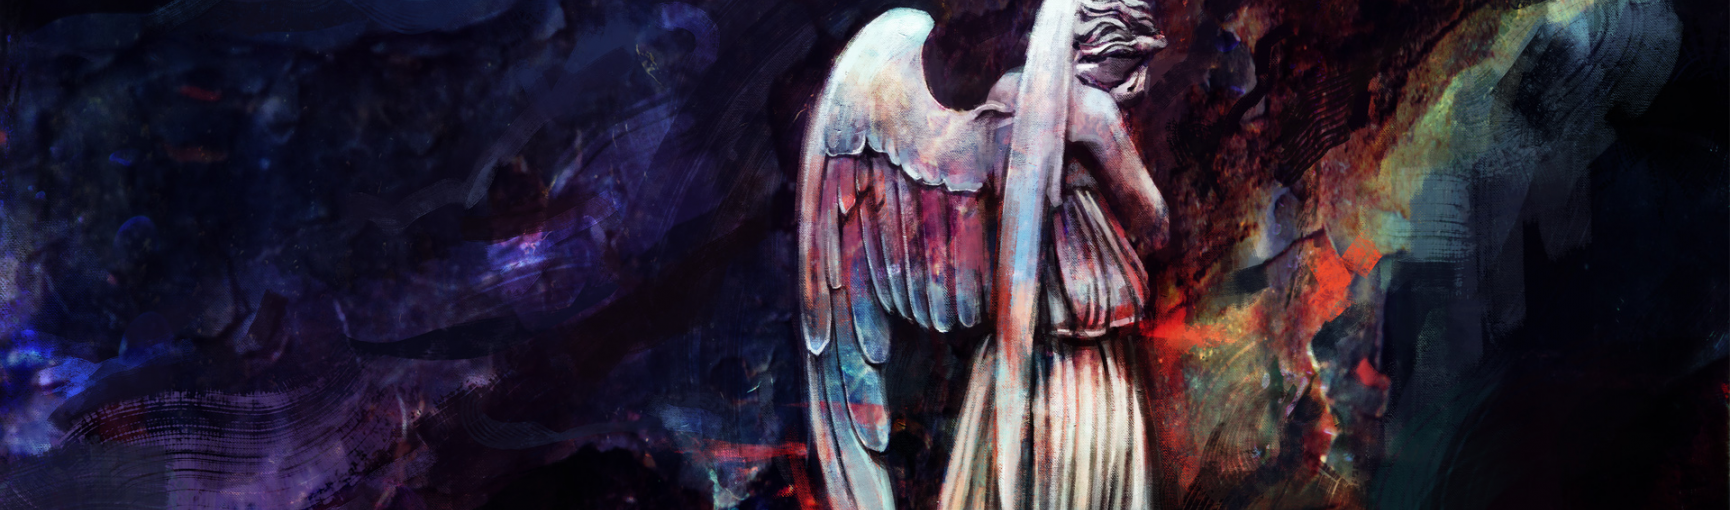 Dont blink Weeping Angels wallpaper Doctor Who 1730x510